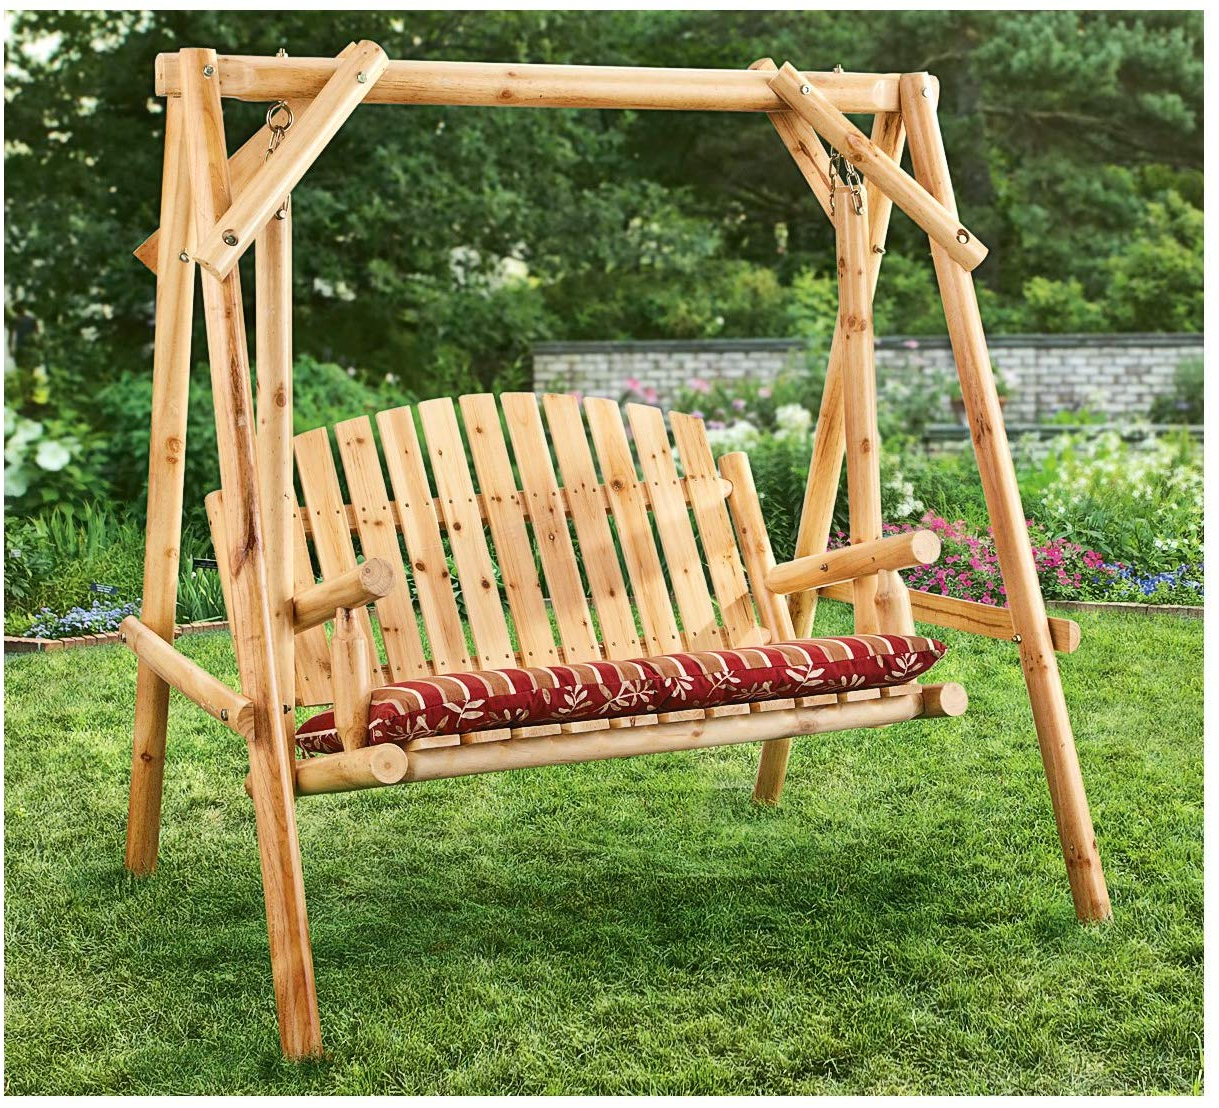 Castlecreek 4' Log Swing, 2 Person With Most Recent 3 Person Light Teak Oil Wood Outdoor Swings (Gallery 6 of 30)